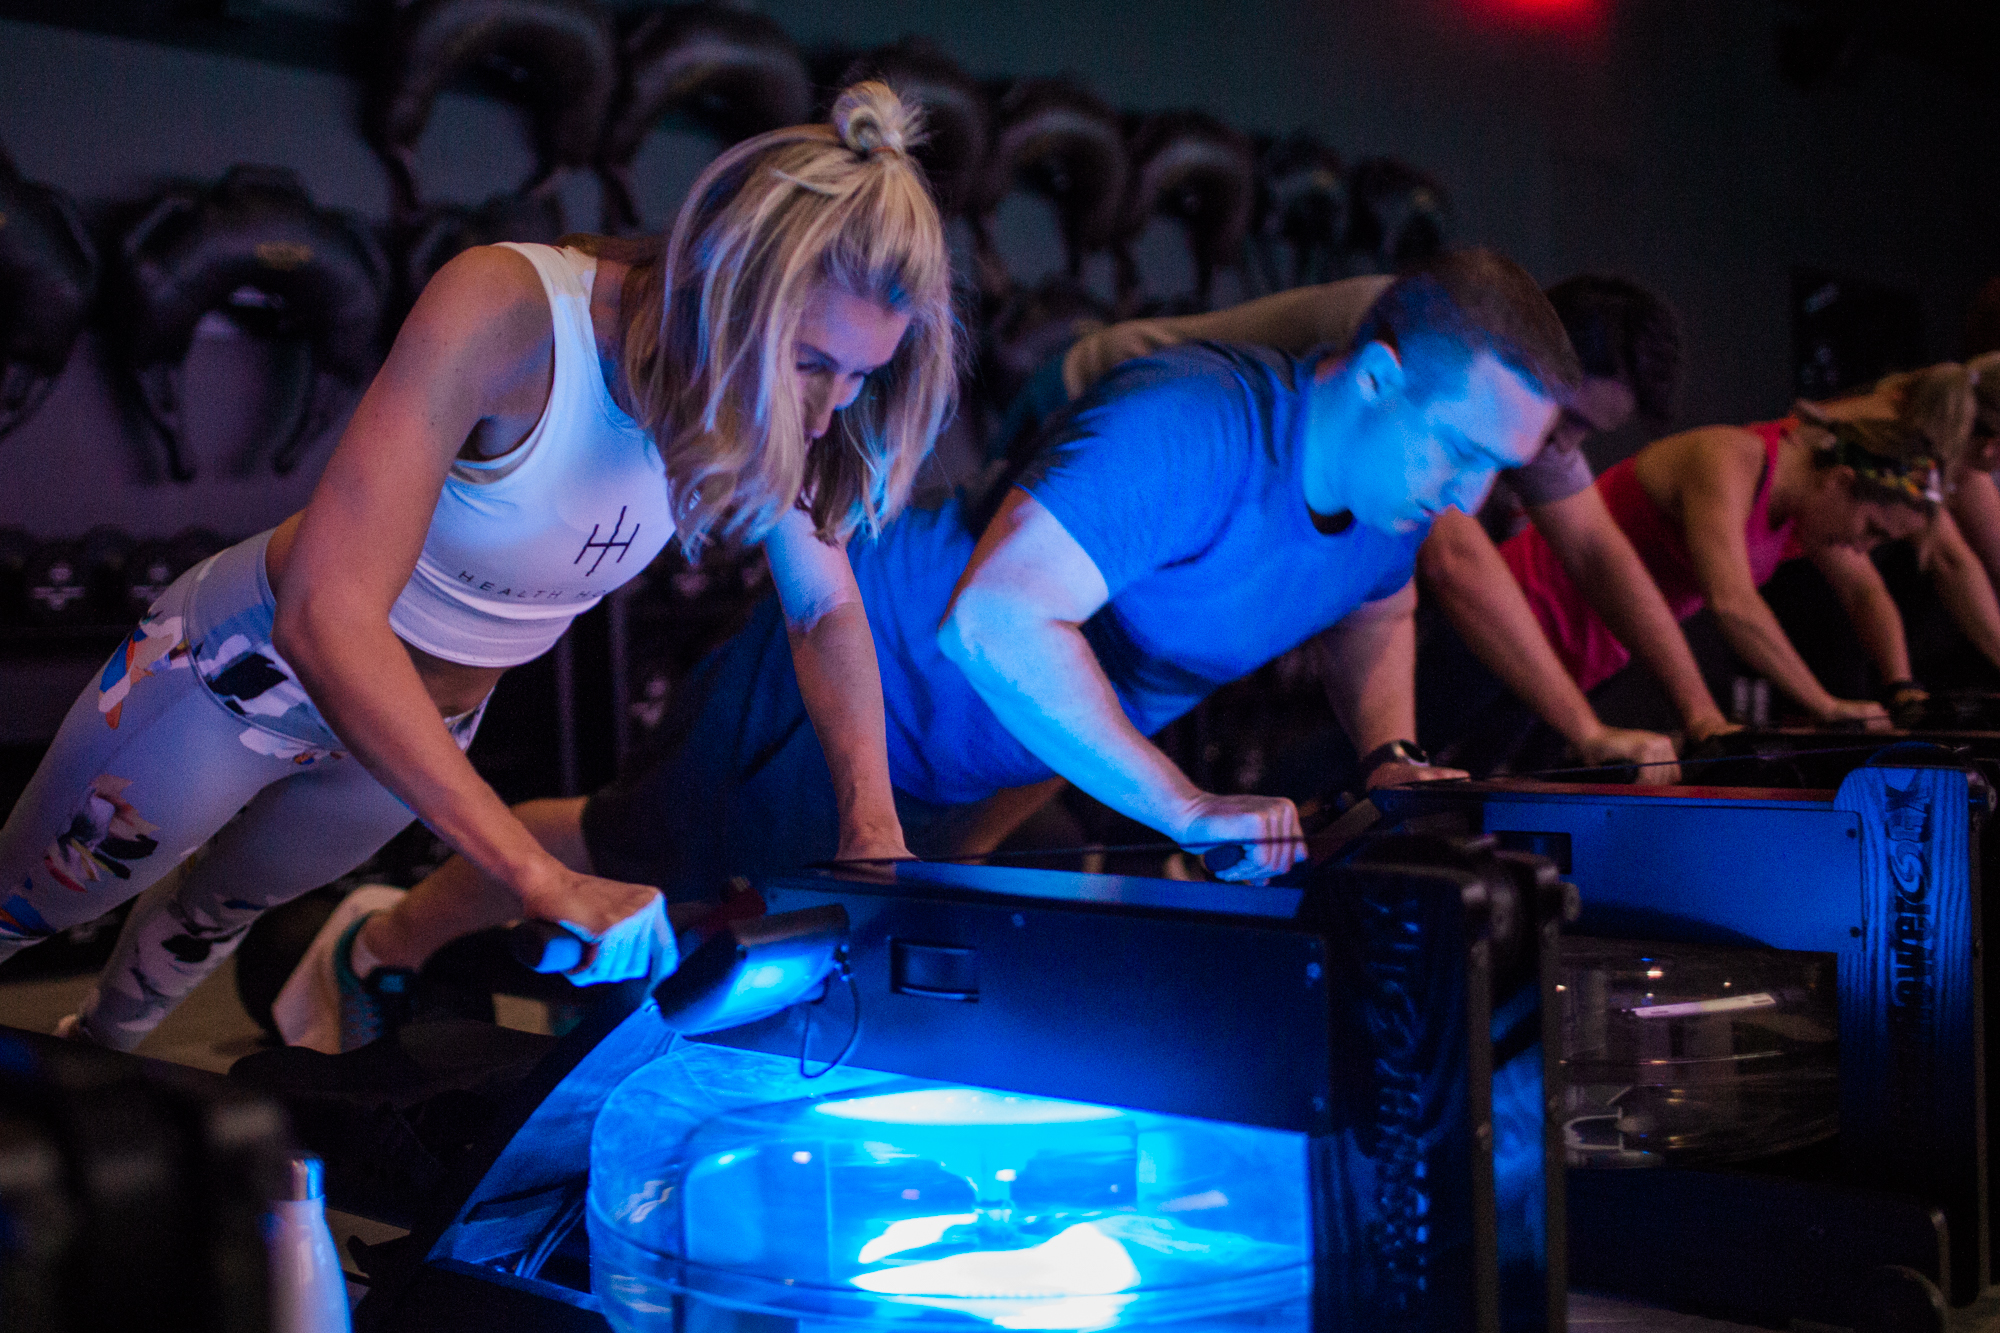 4be5e7a371275 ROWING  The next level of fitness - Melanie Knopke